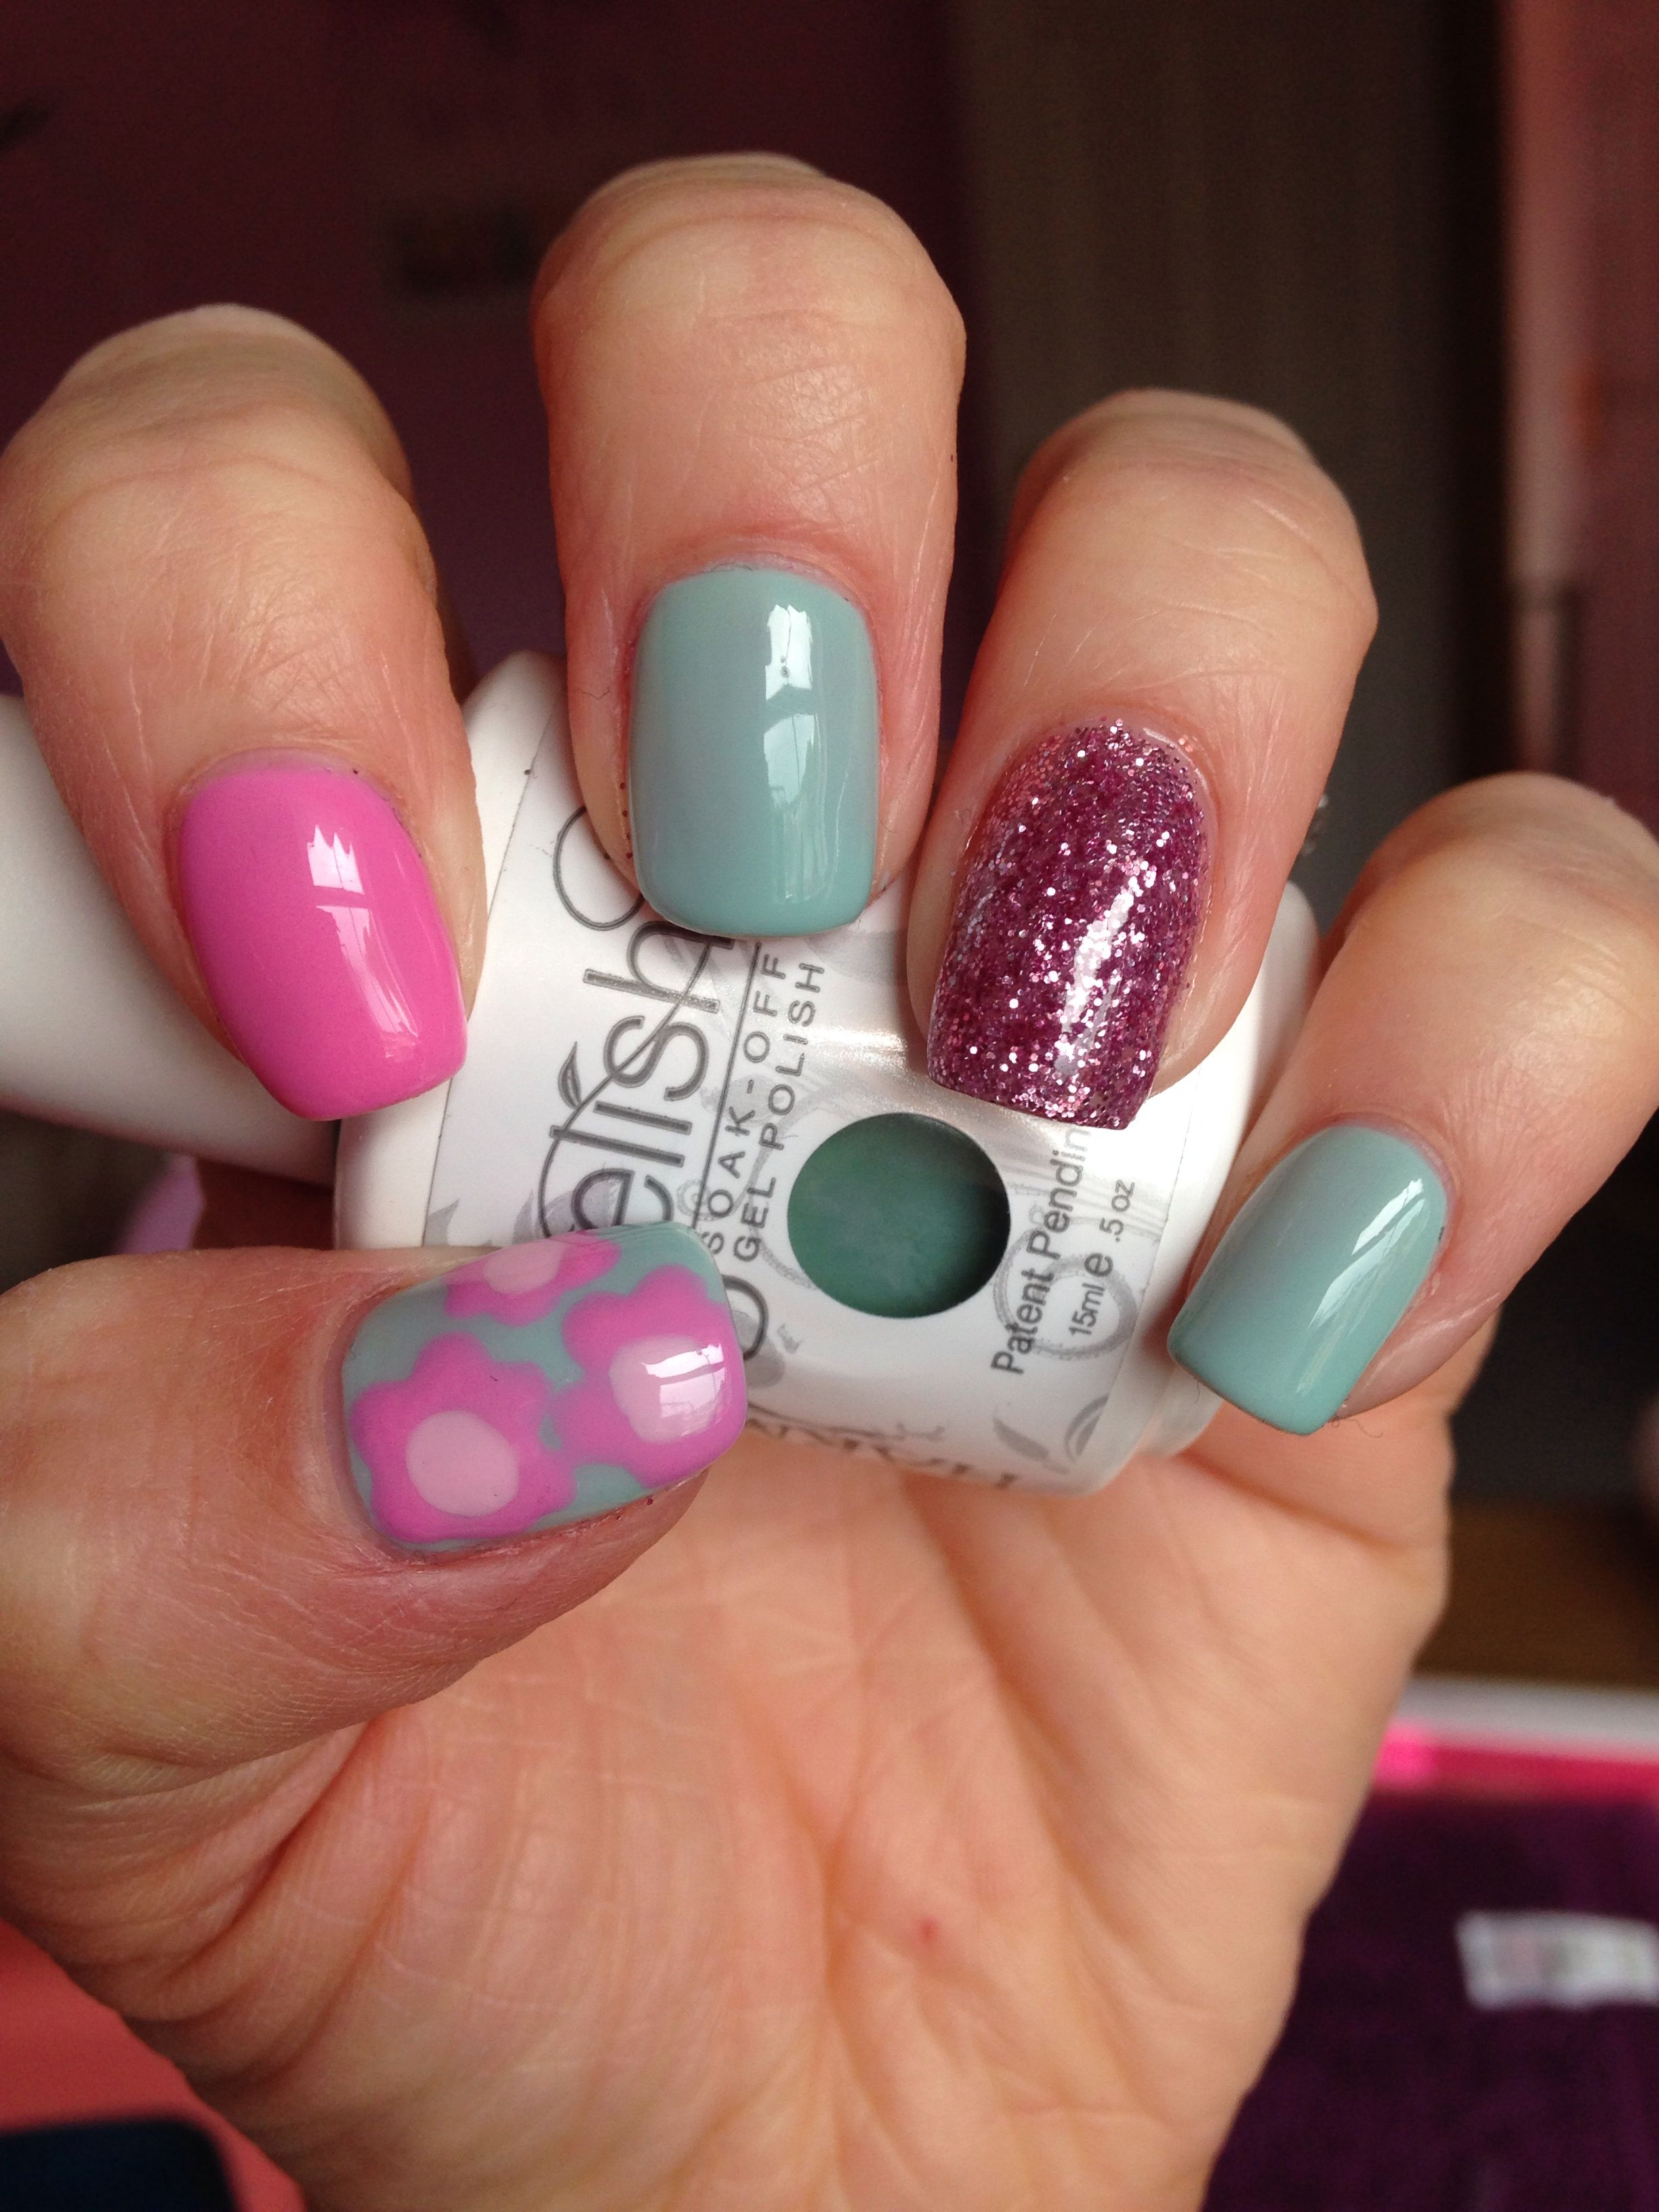 Go girl pink, Seafoam & pink glitter nail gel nails flower nail art #gelish #hailsnails